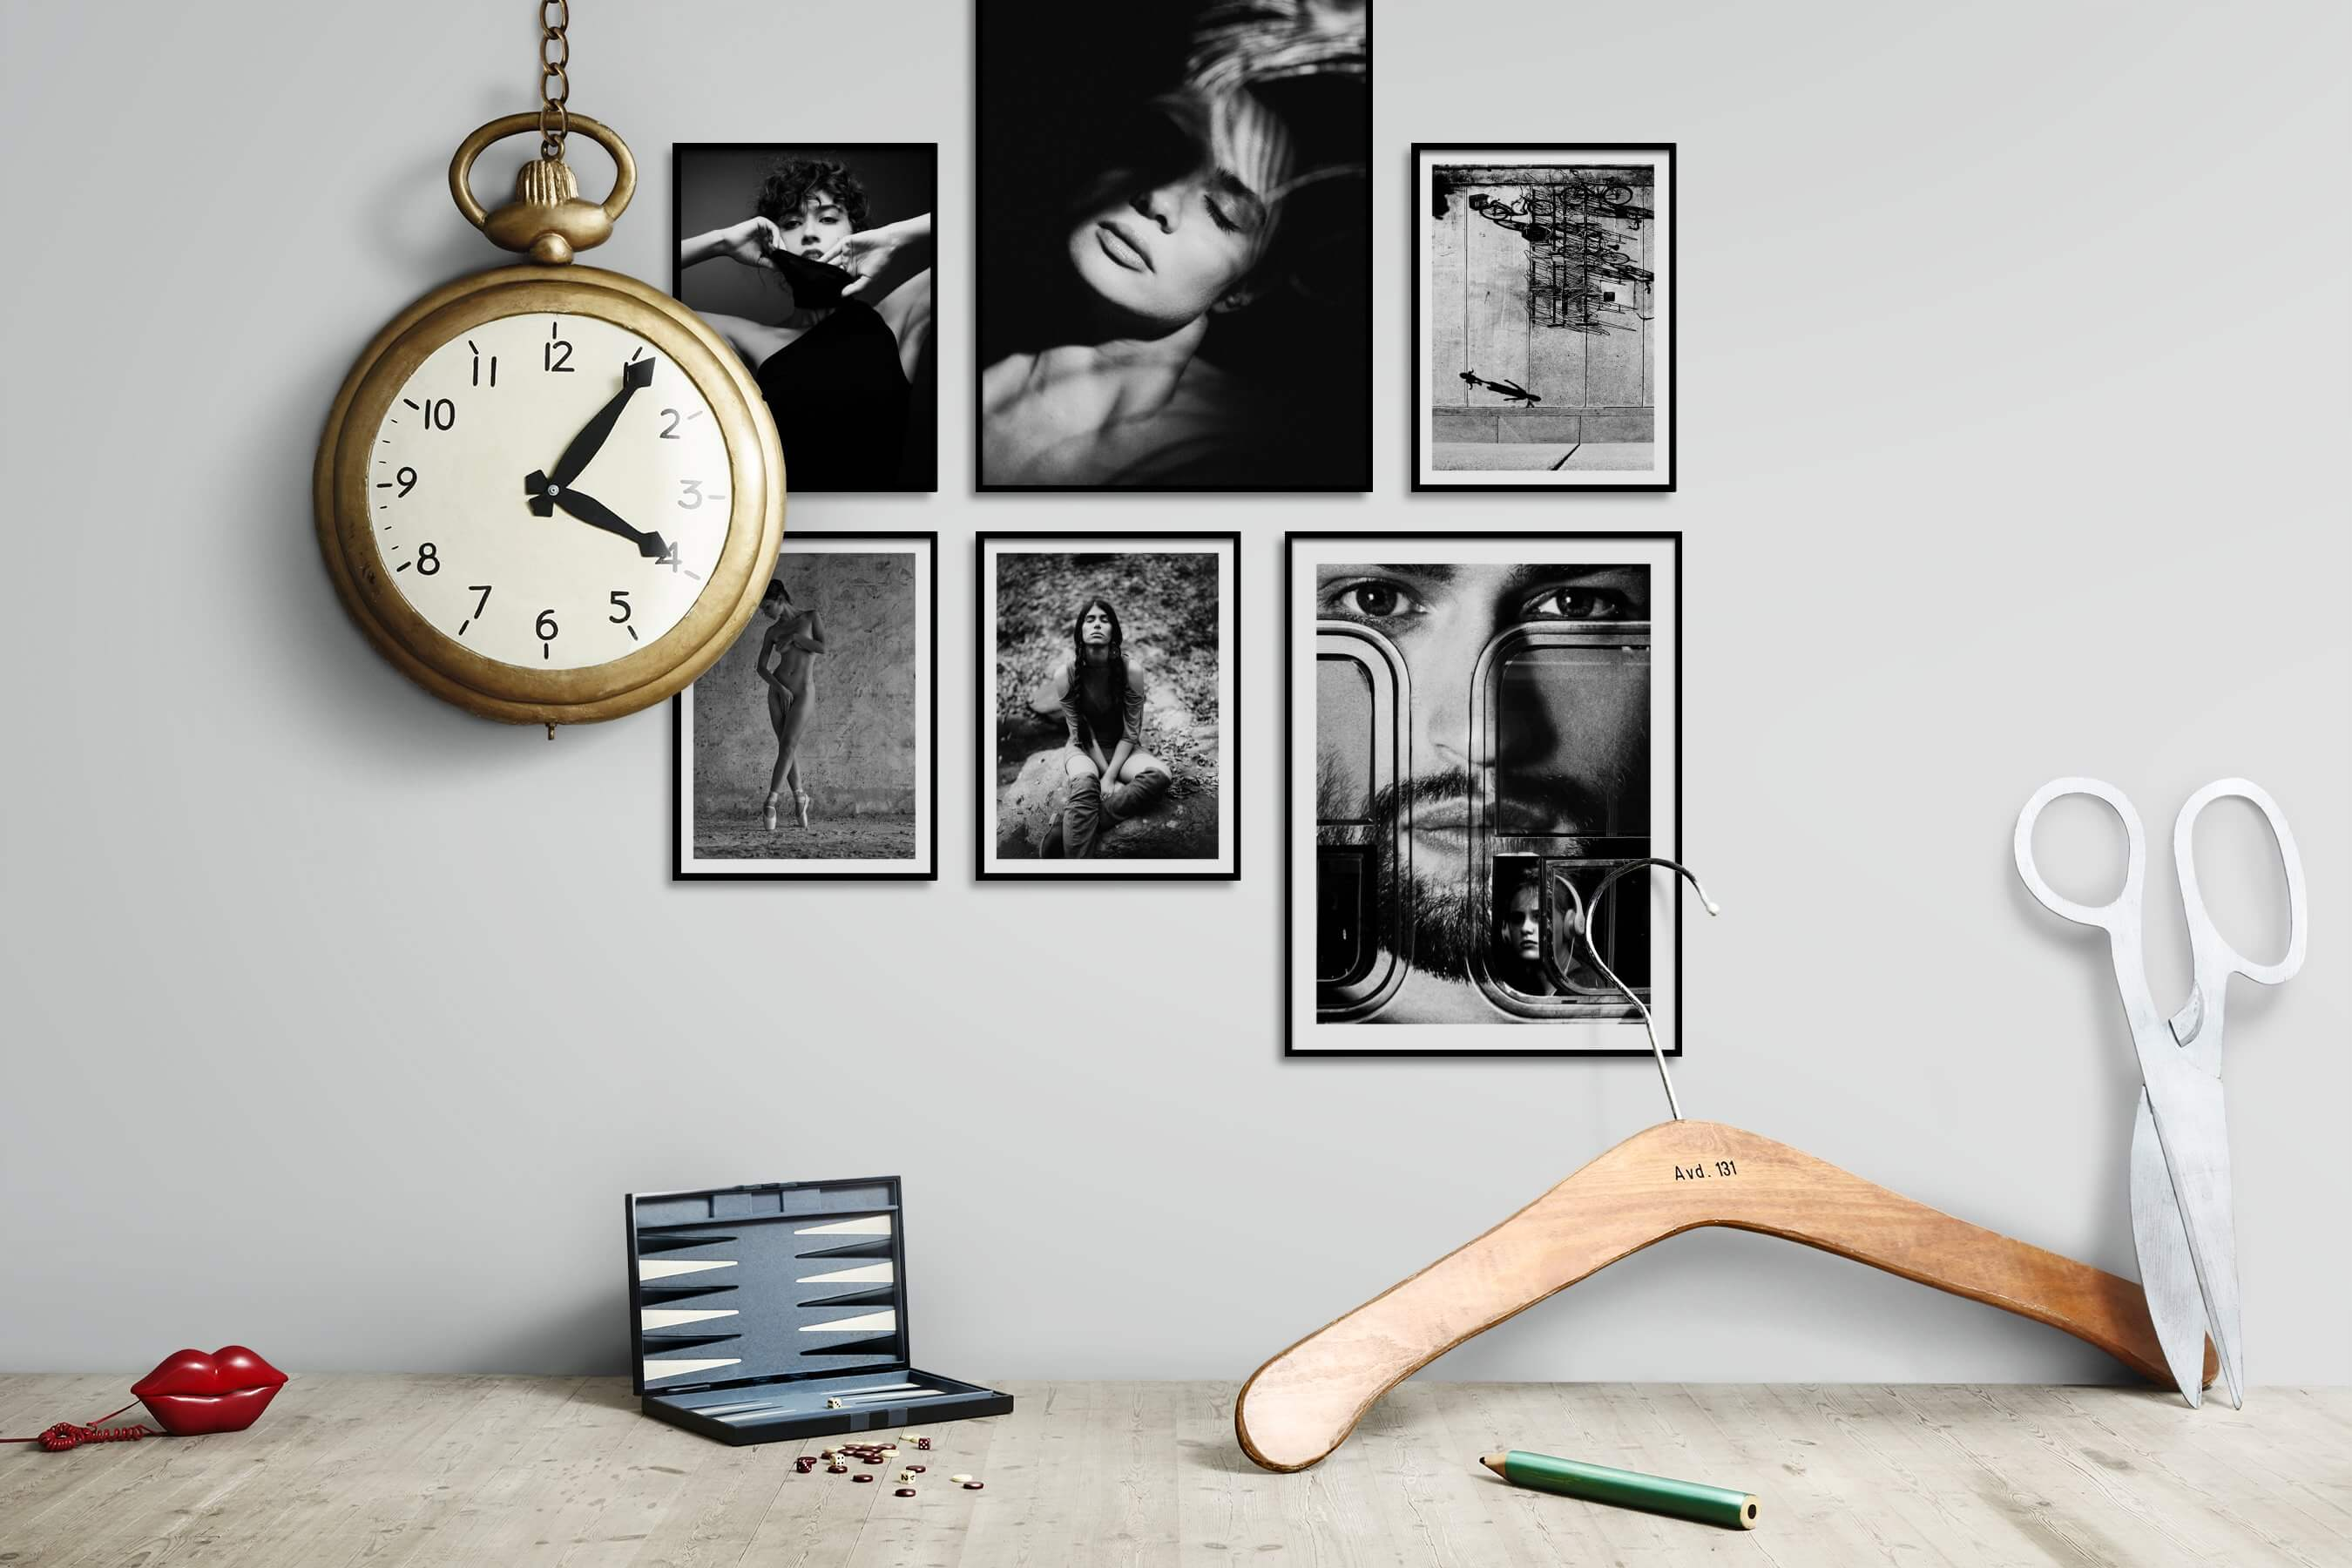 Gallery wall idea with six framed pictures arranged on a wall depicting Fashion & Beauty, Black & White, Artsy, and City Life